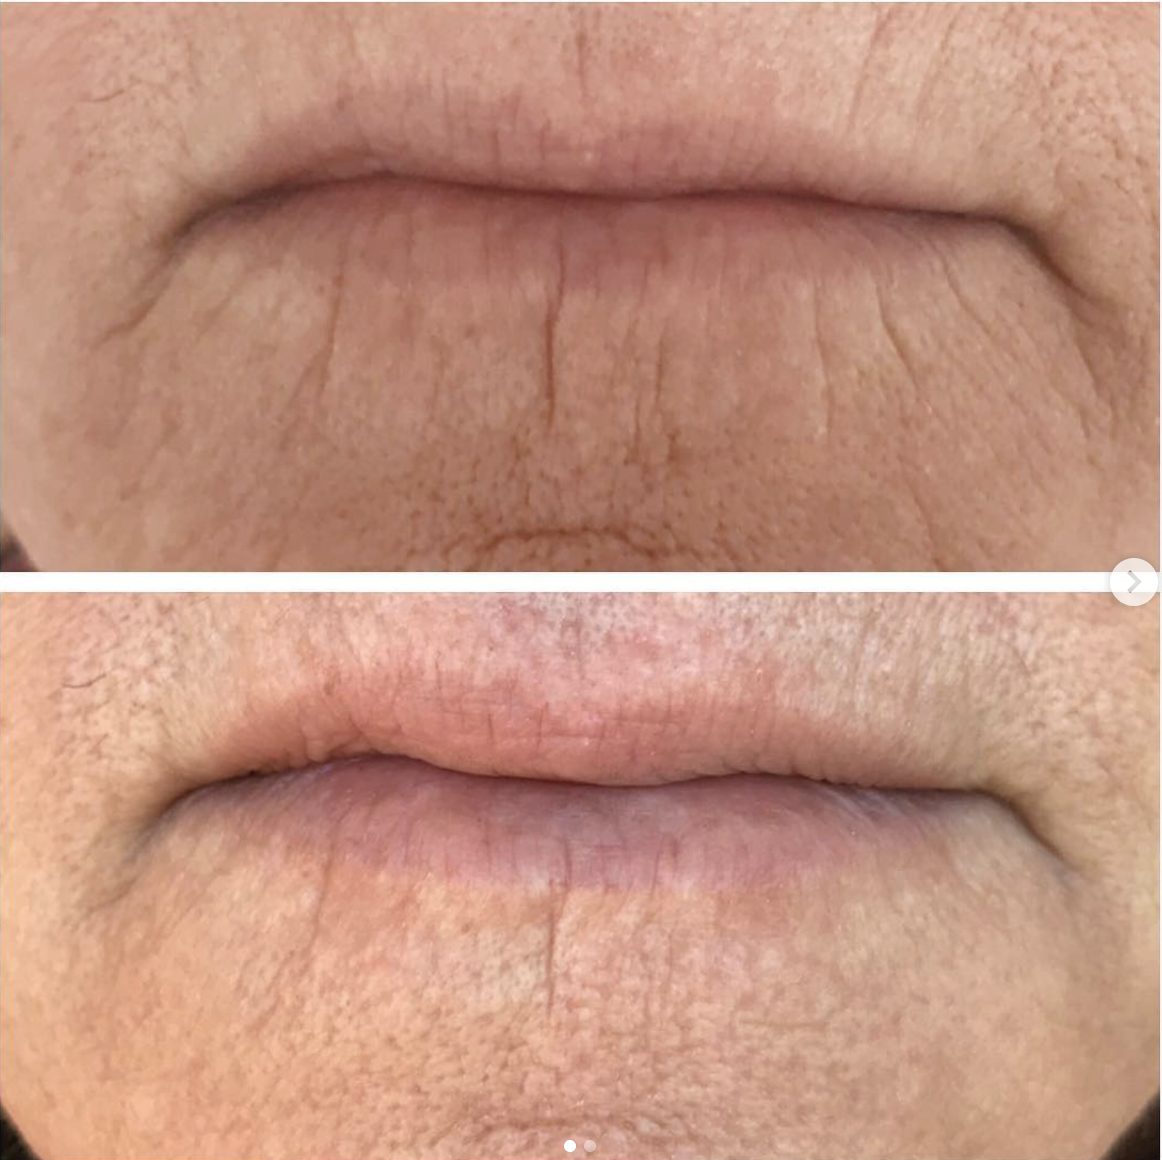 One treatment, 2 months healed. Reduction in fine lines, lift in the corners of mouth and slight lip enhancement (lip flip).